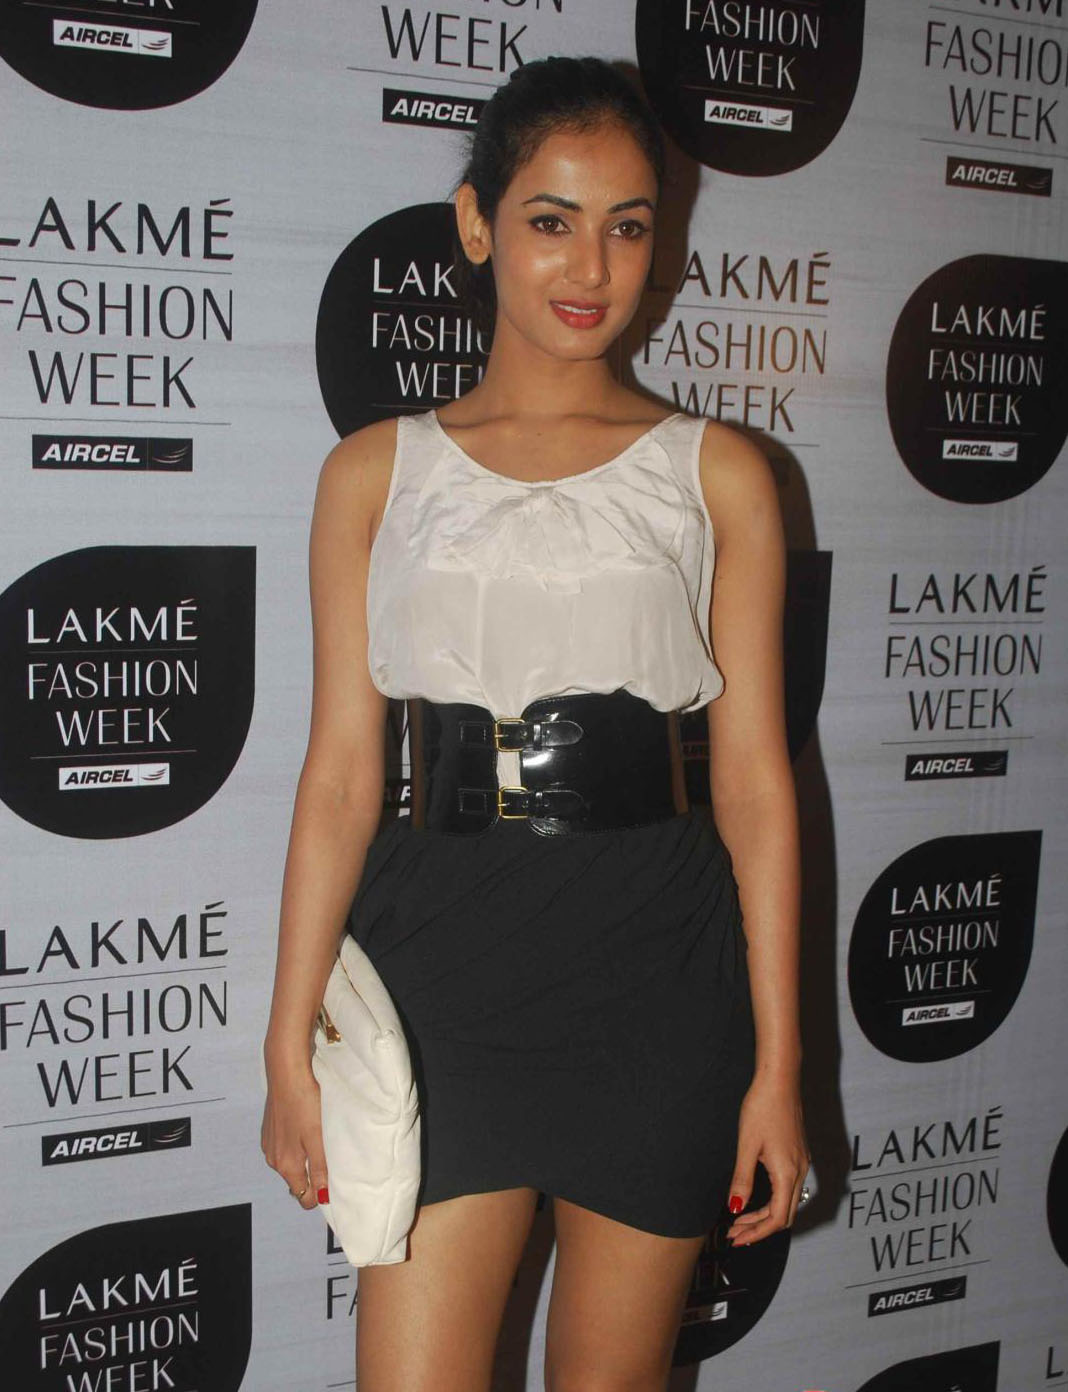 LFW: Who was the best celebrity showstopper?